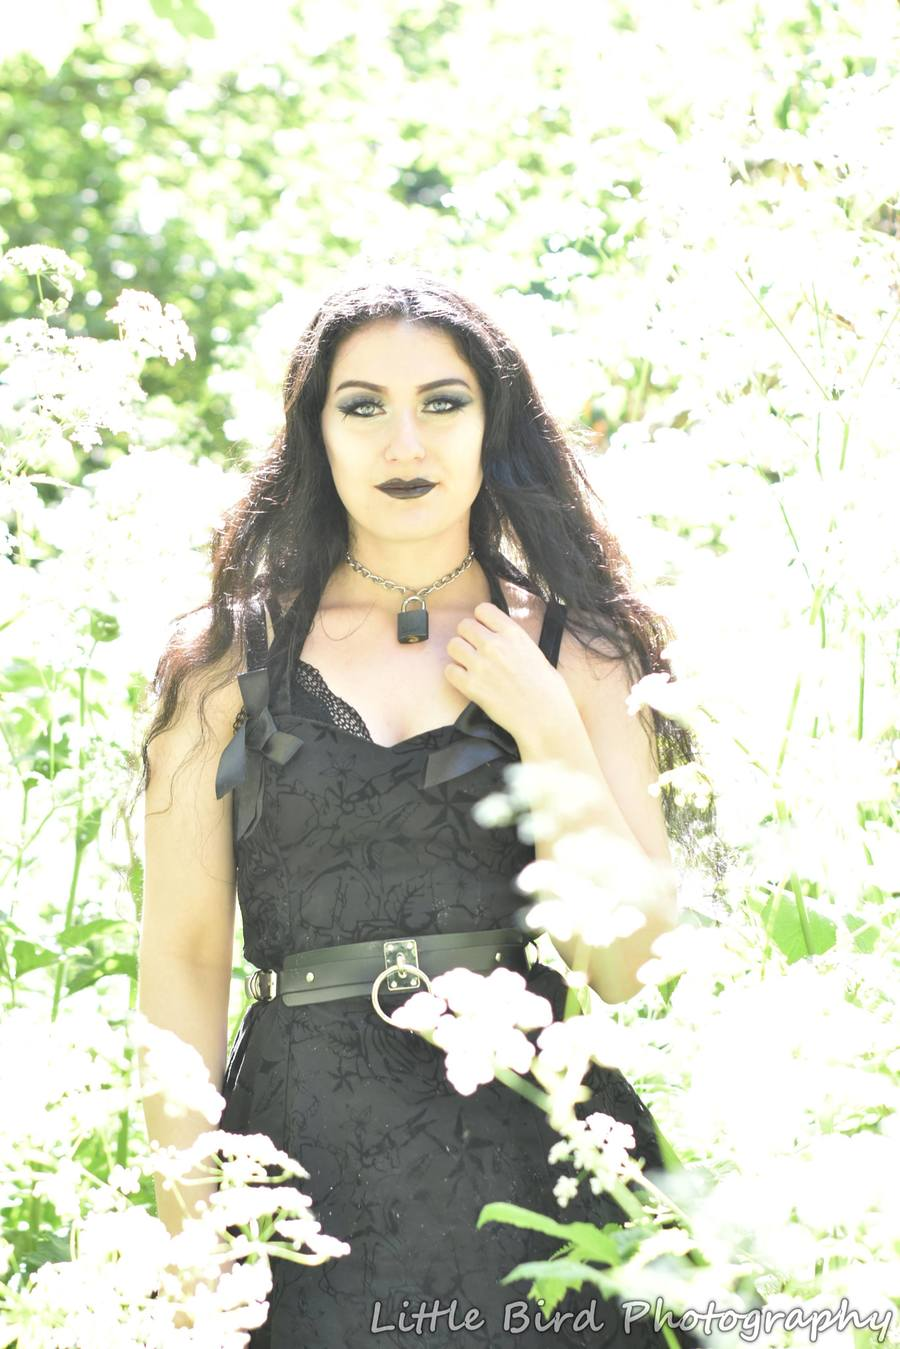 Sunlight and Flowers / Photography by Gail C R Photography, Model Chaotic Chaos / Uploaded 23rd May 2018 @ 09:19 PM